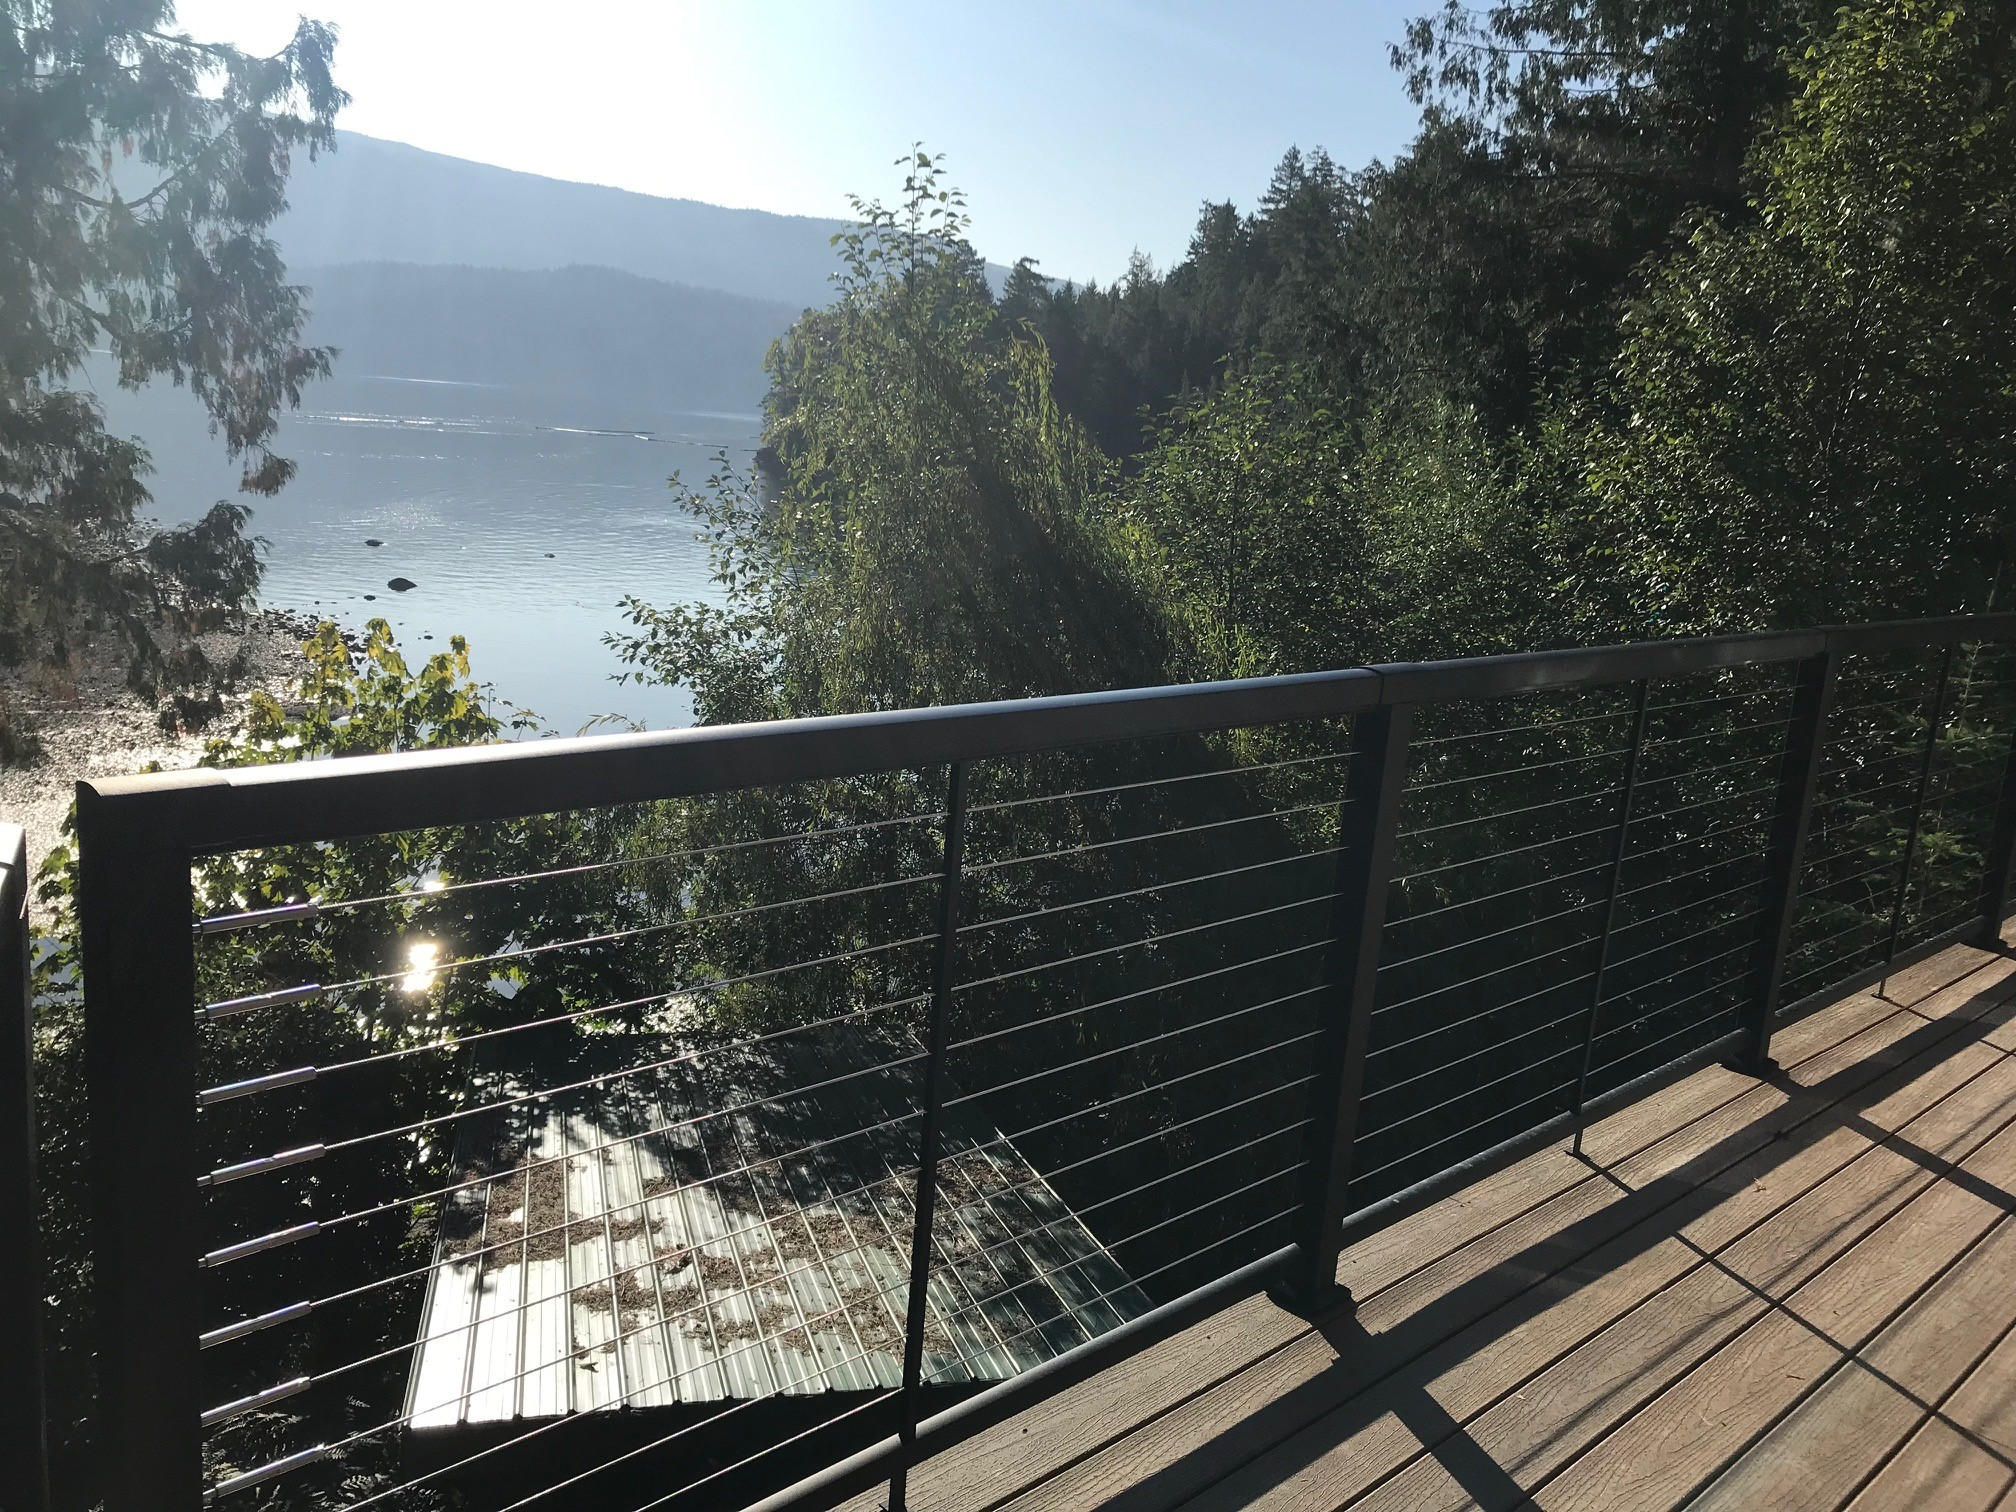 Vista Aluminum Cable Railing, Sechelt, BC August 2019